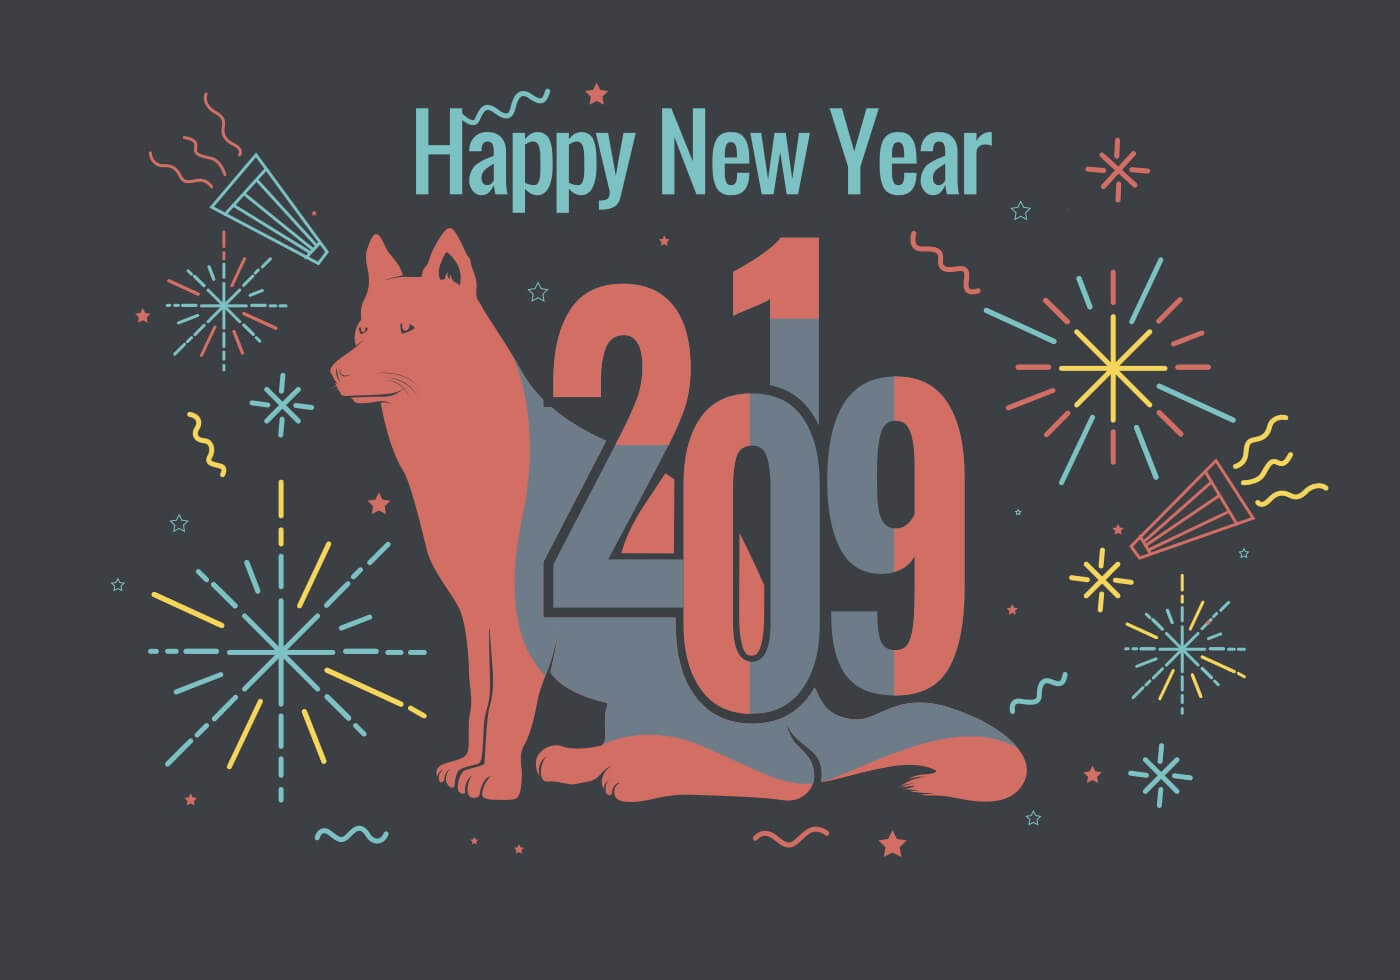 happy new year 2019 wishes images quotes happy new year 2019